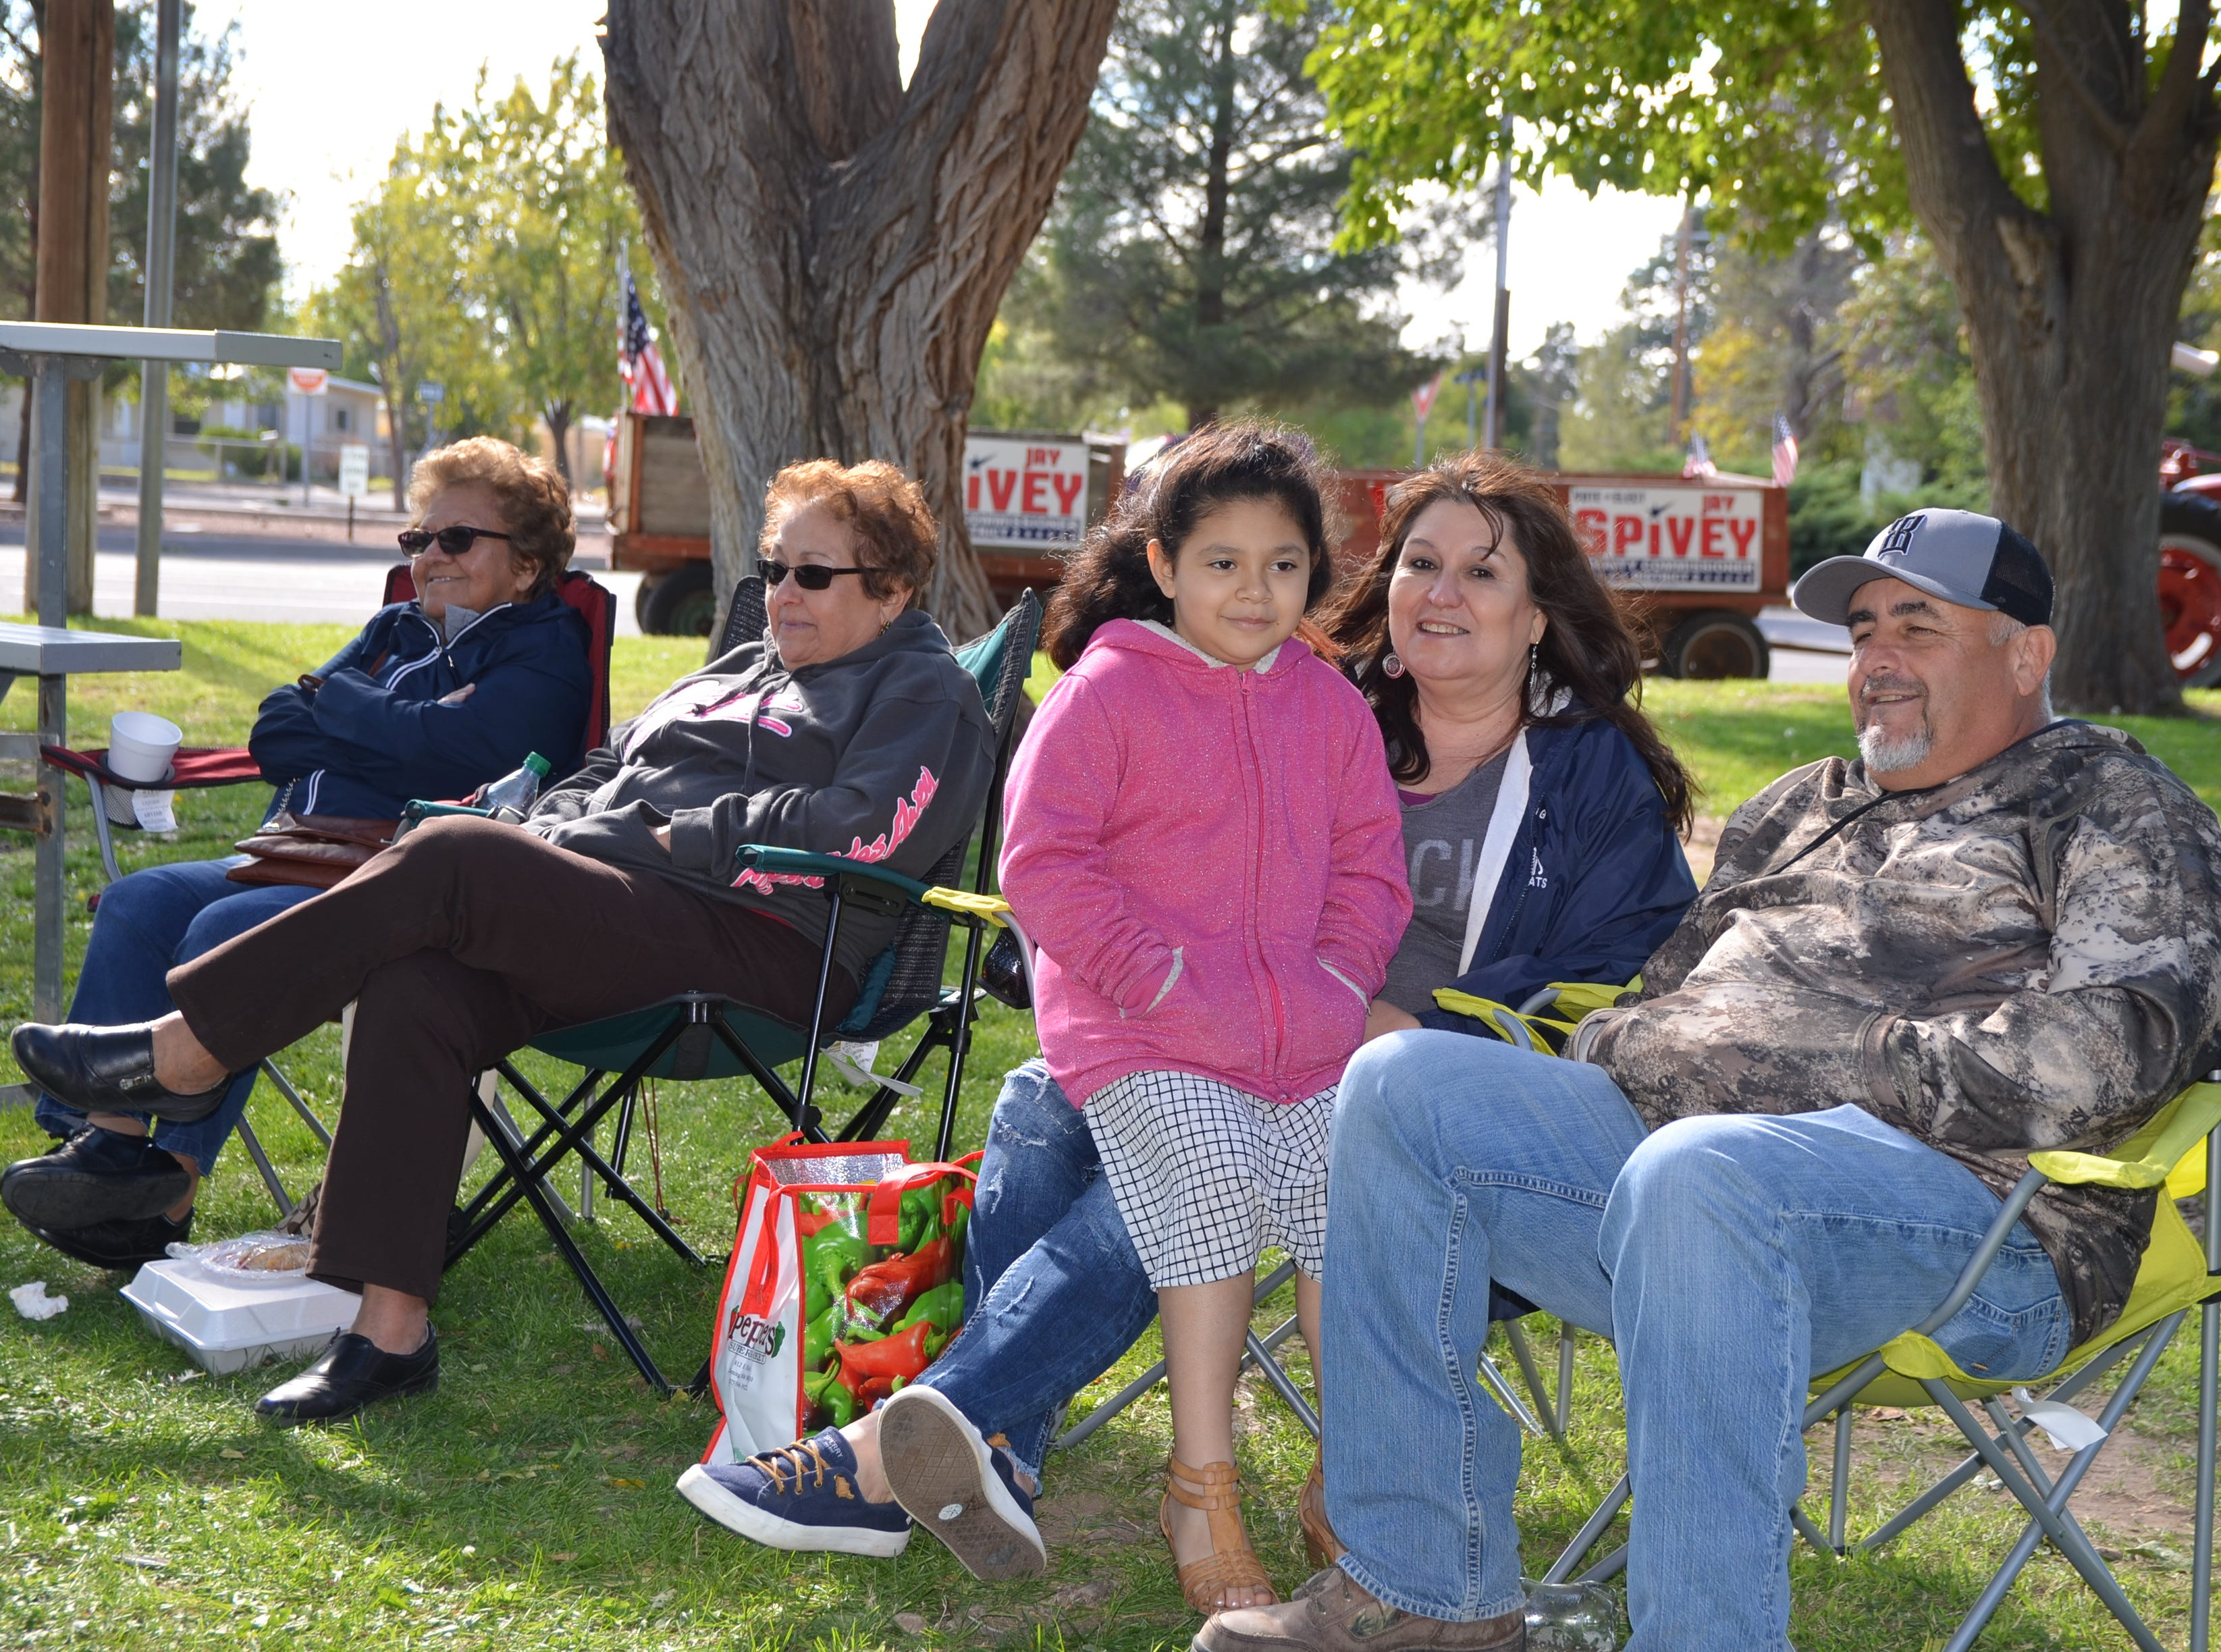 Second from Left: Patsy Leyba accompanied her family and friend to enjoy the music from the band, Alegria during the Klobase Festival on Sunday.